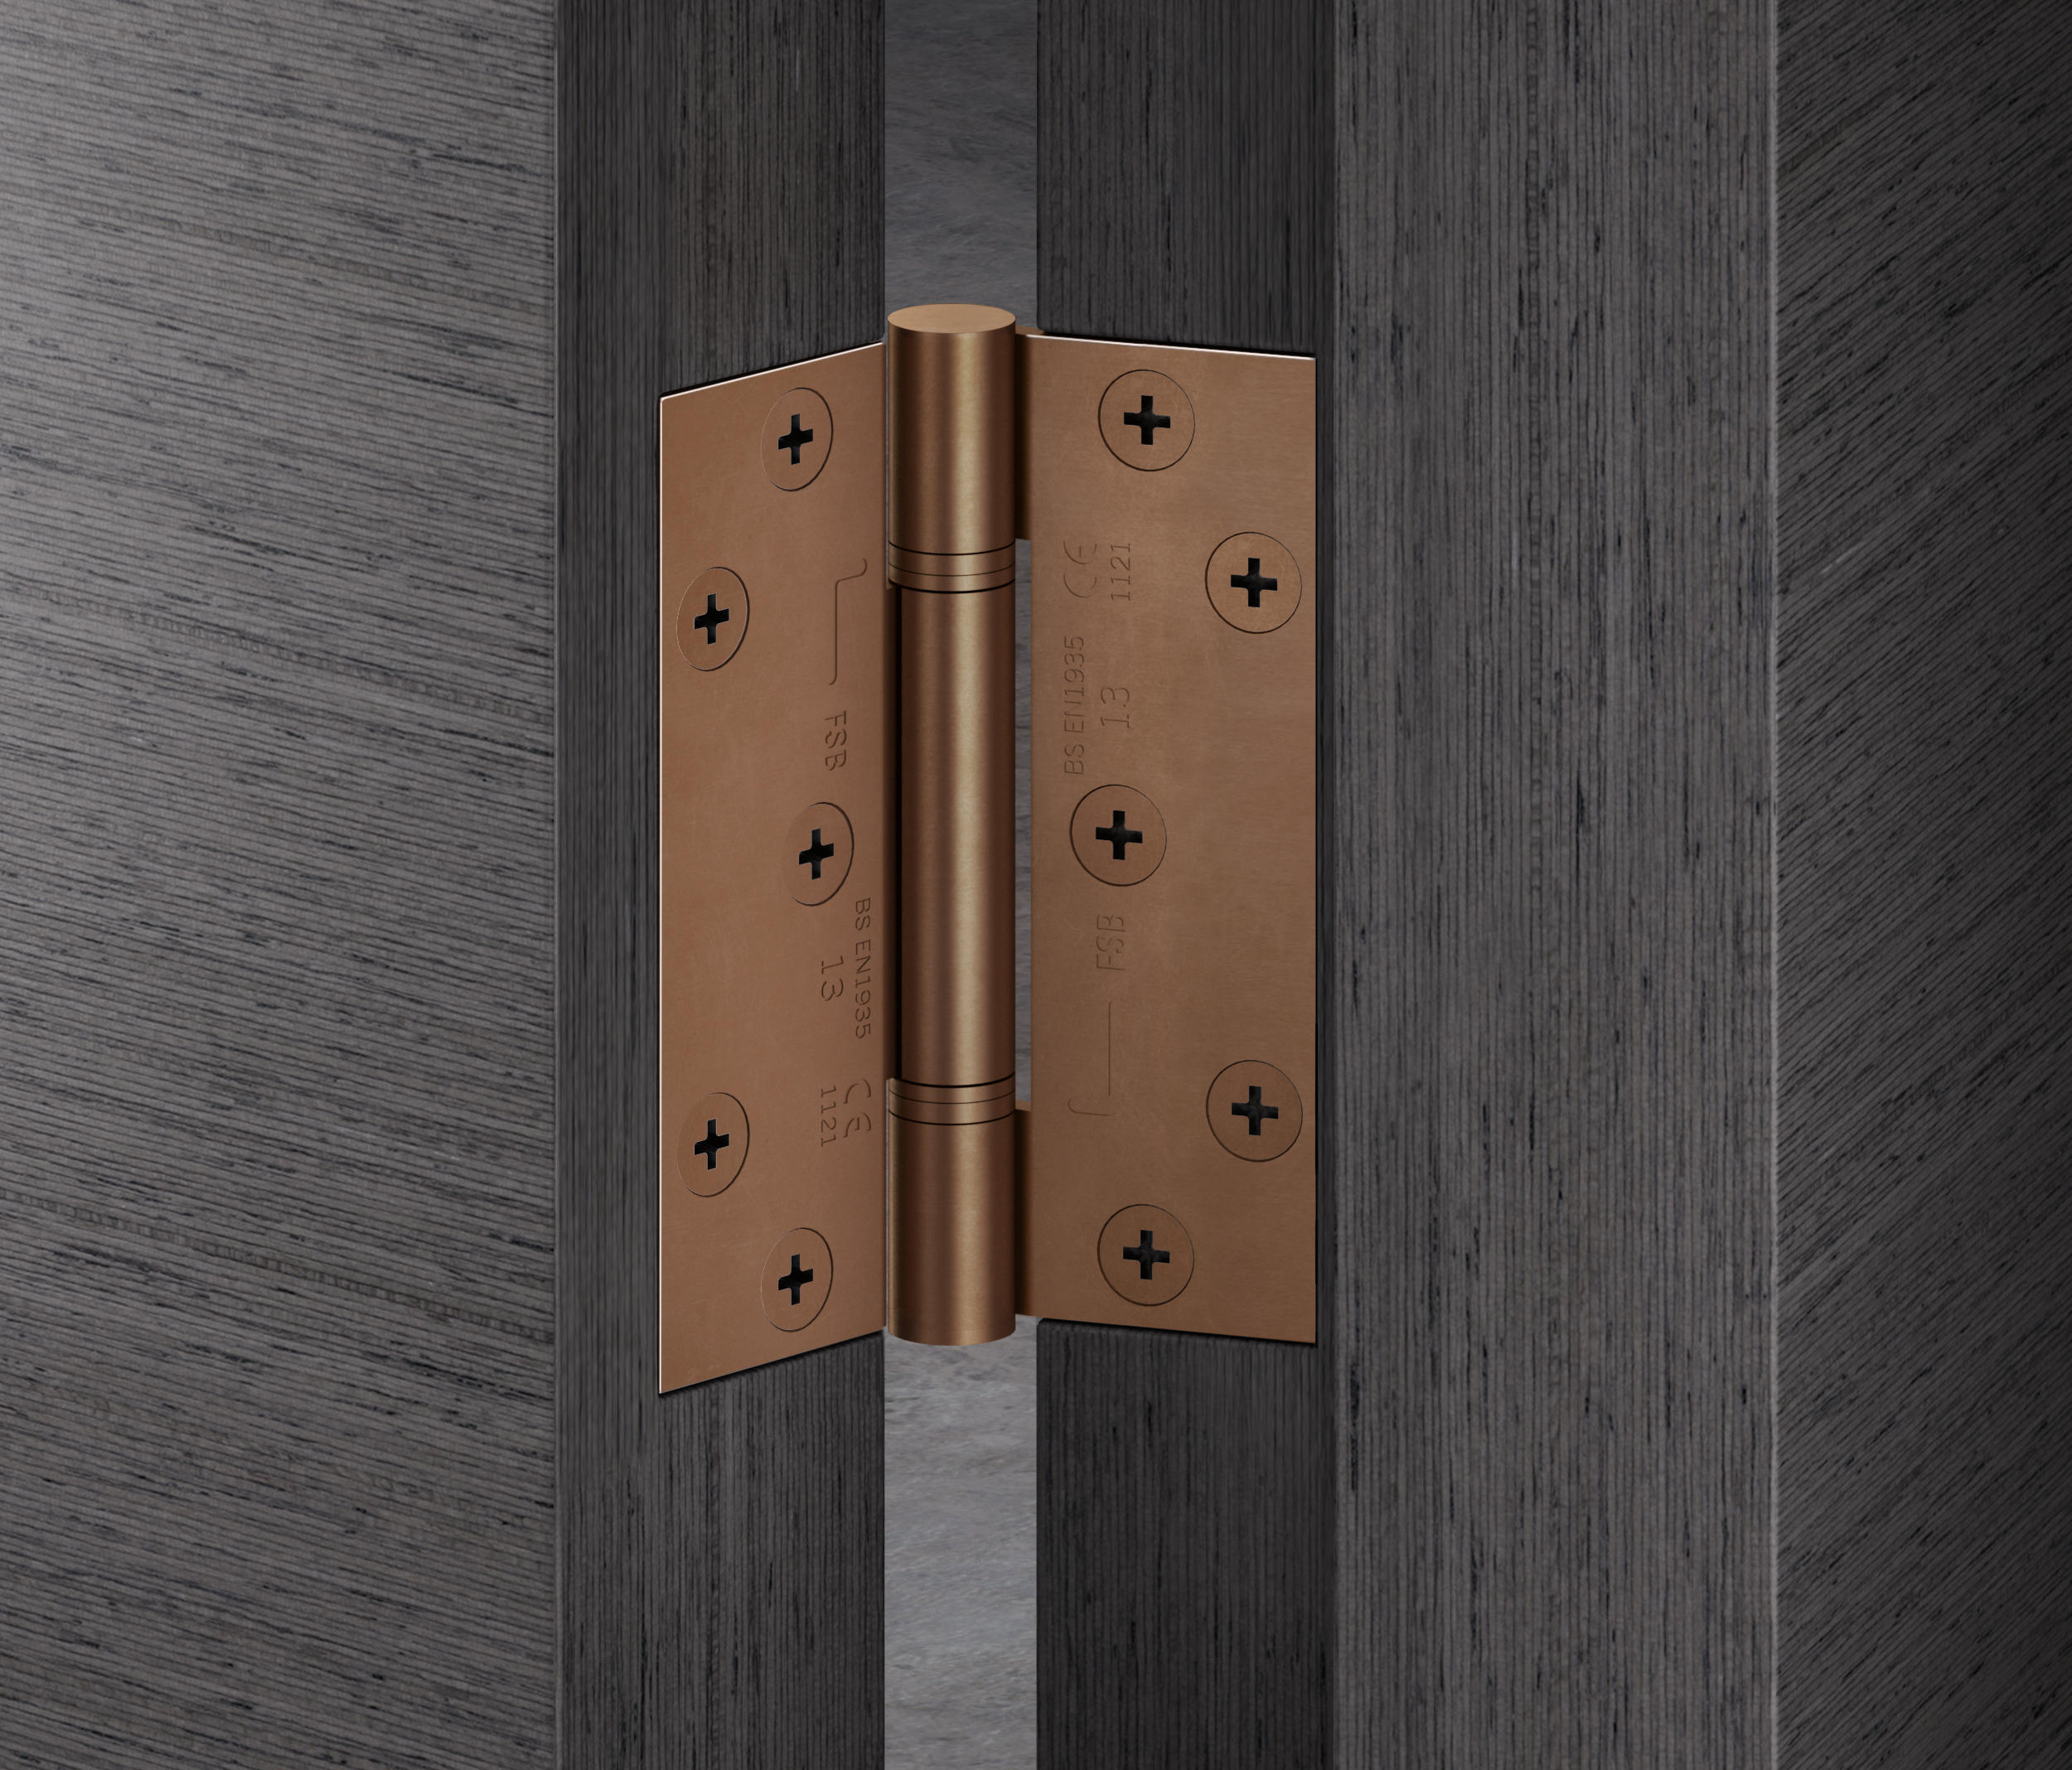 Le Meilleur Door Hinge Bronze Hinges By Fsb Architonic Ce Mois Ci